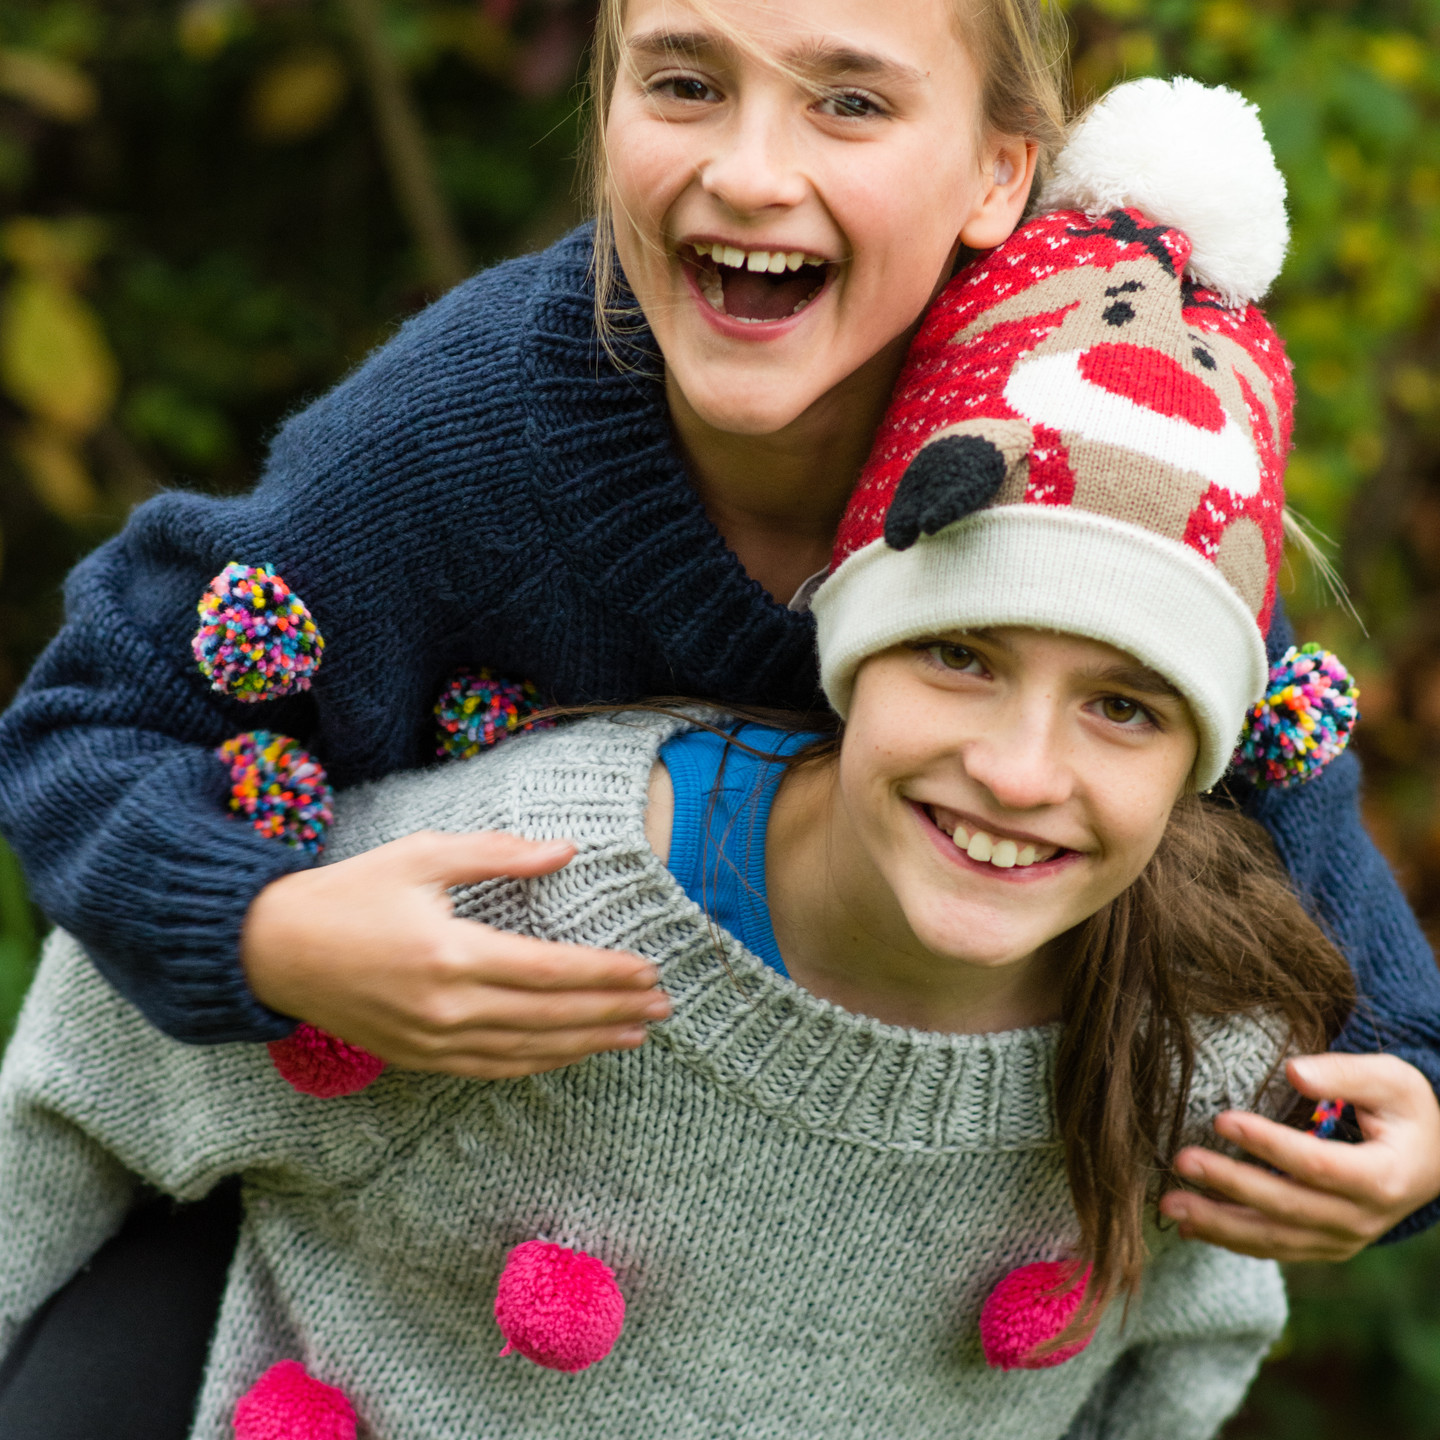 Family photography shoot outdoors, young girls giving each other a piggyback, natural photo shoot